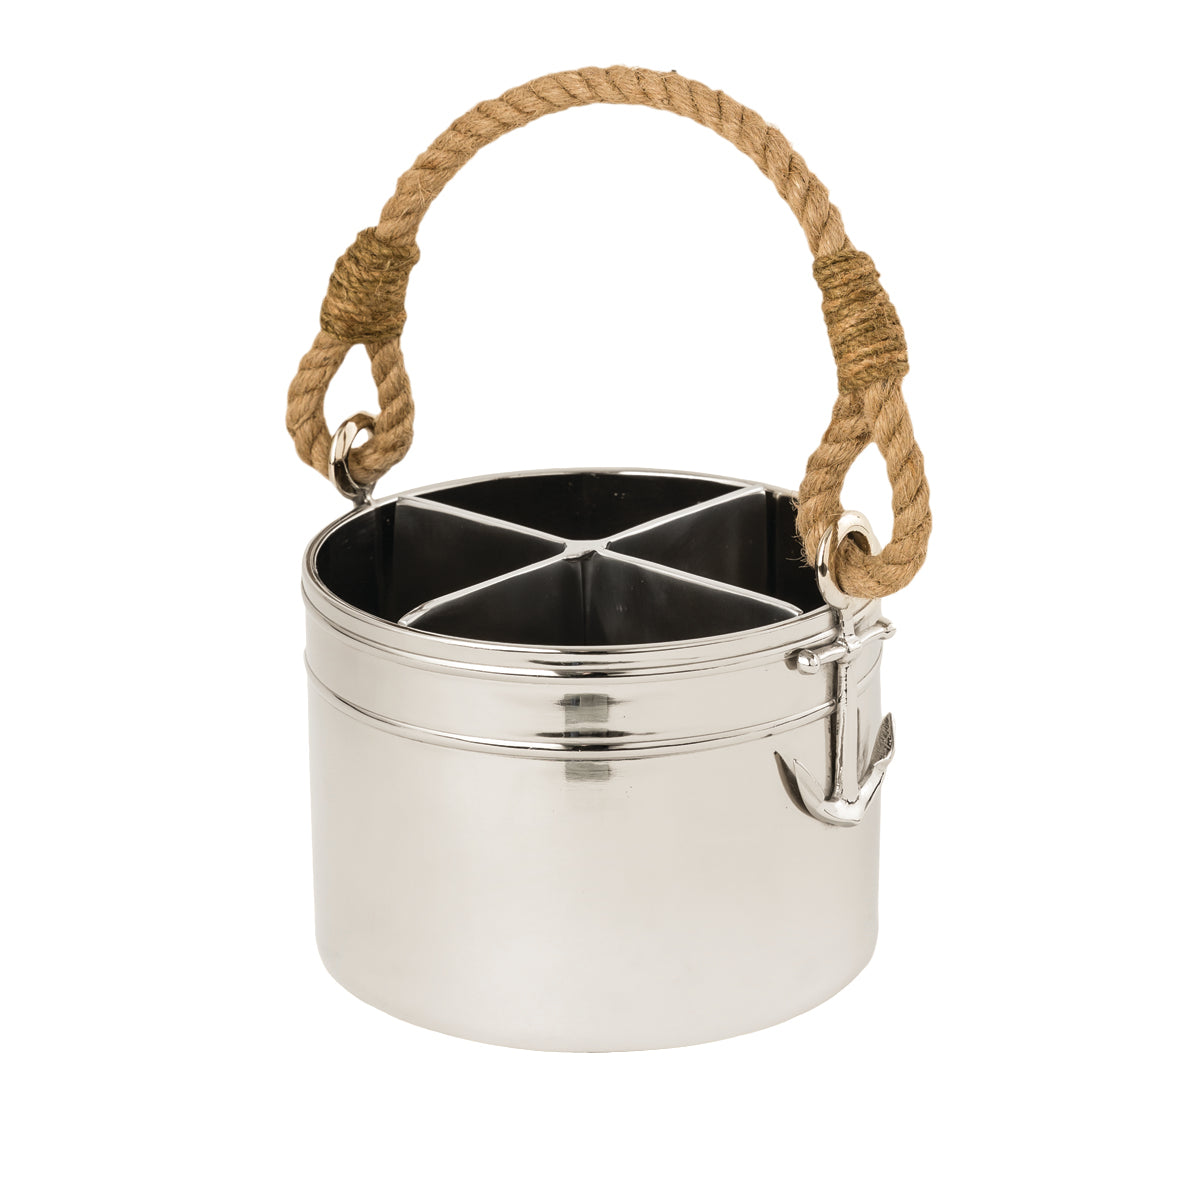 Lakeside Anchor Utensil Caddy / Bucket